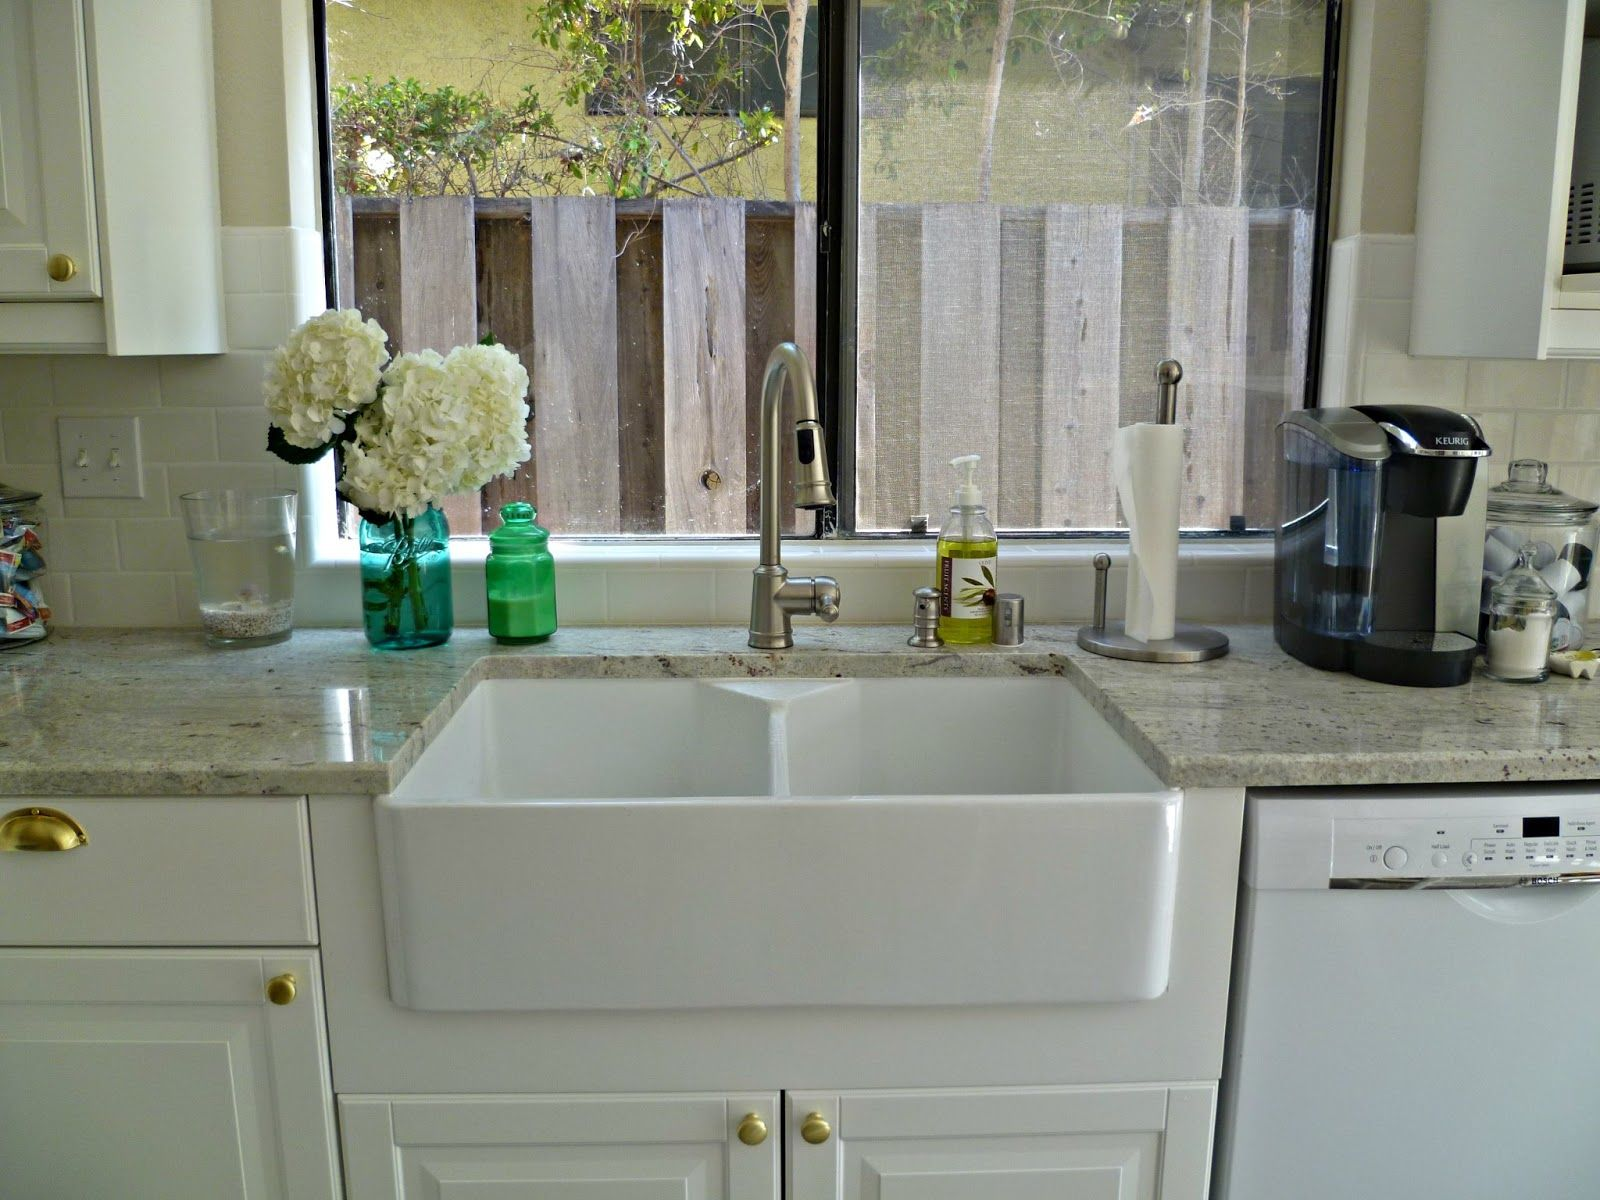 Grey Granite Countertop Connected By Rectangle White Sinks And